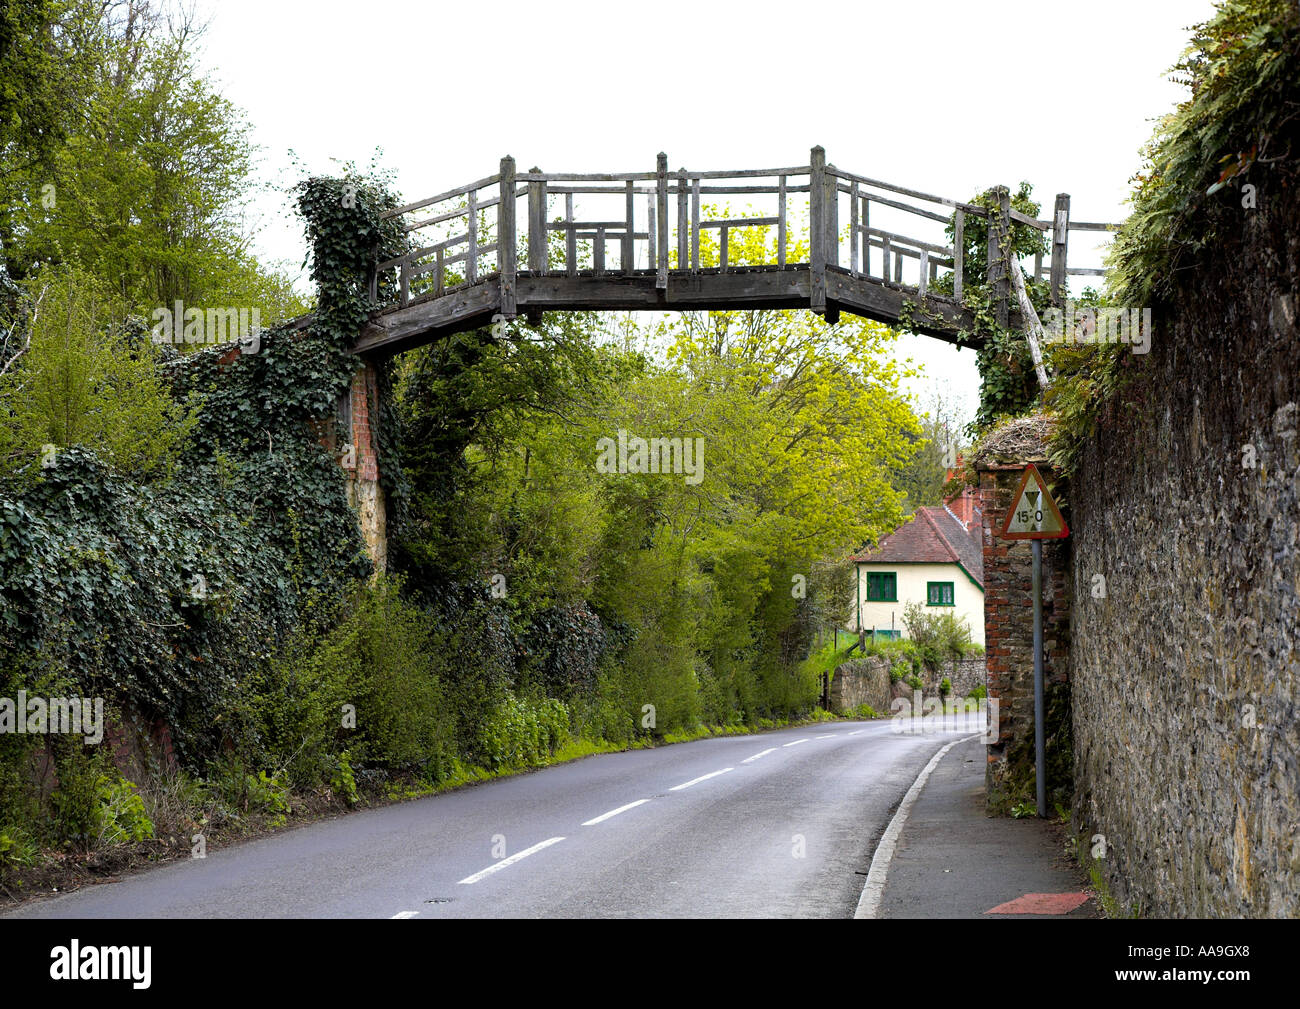 Old wooden bridge over the road in Shere SurreyStock Photo